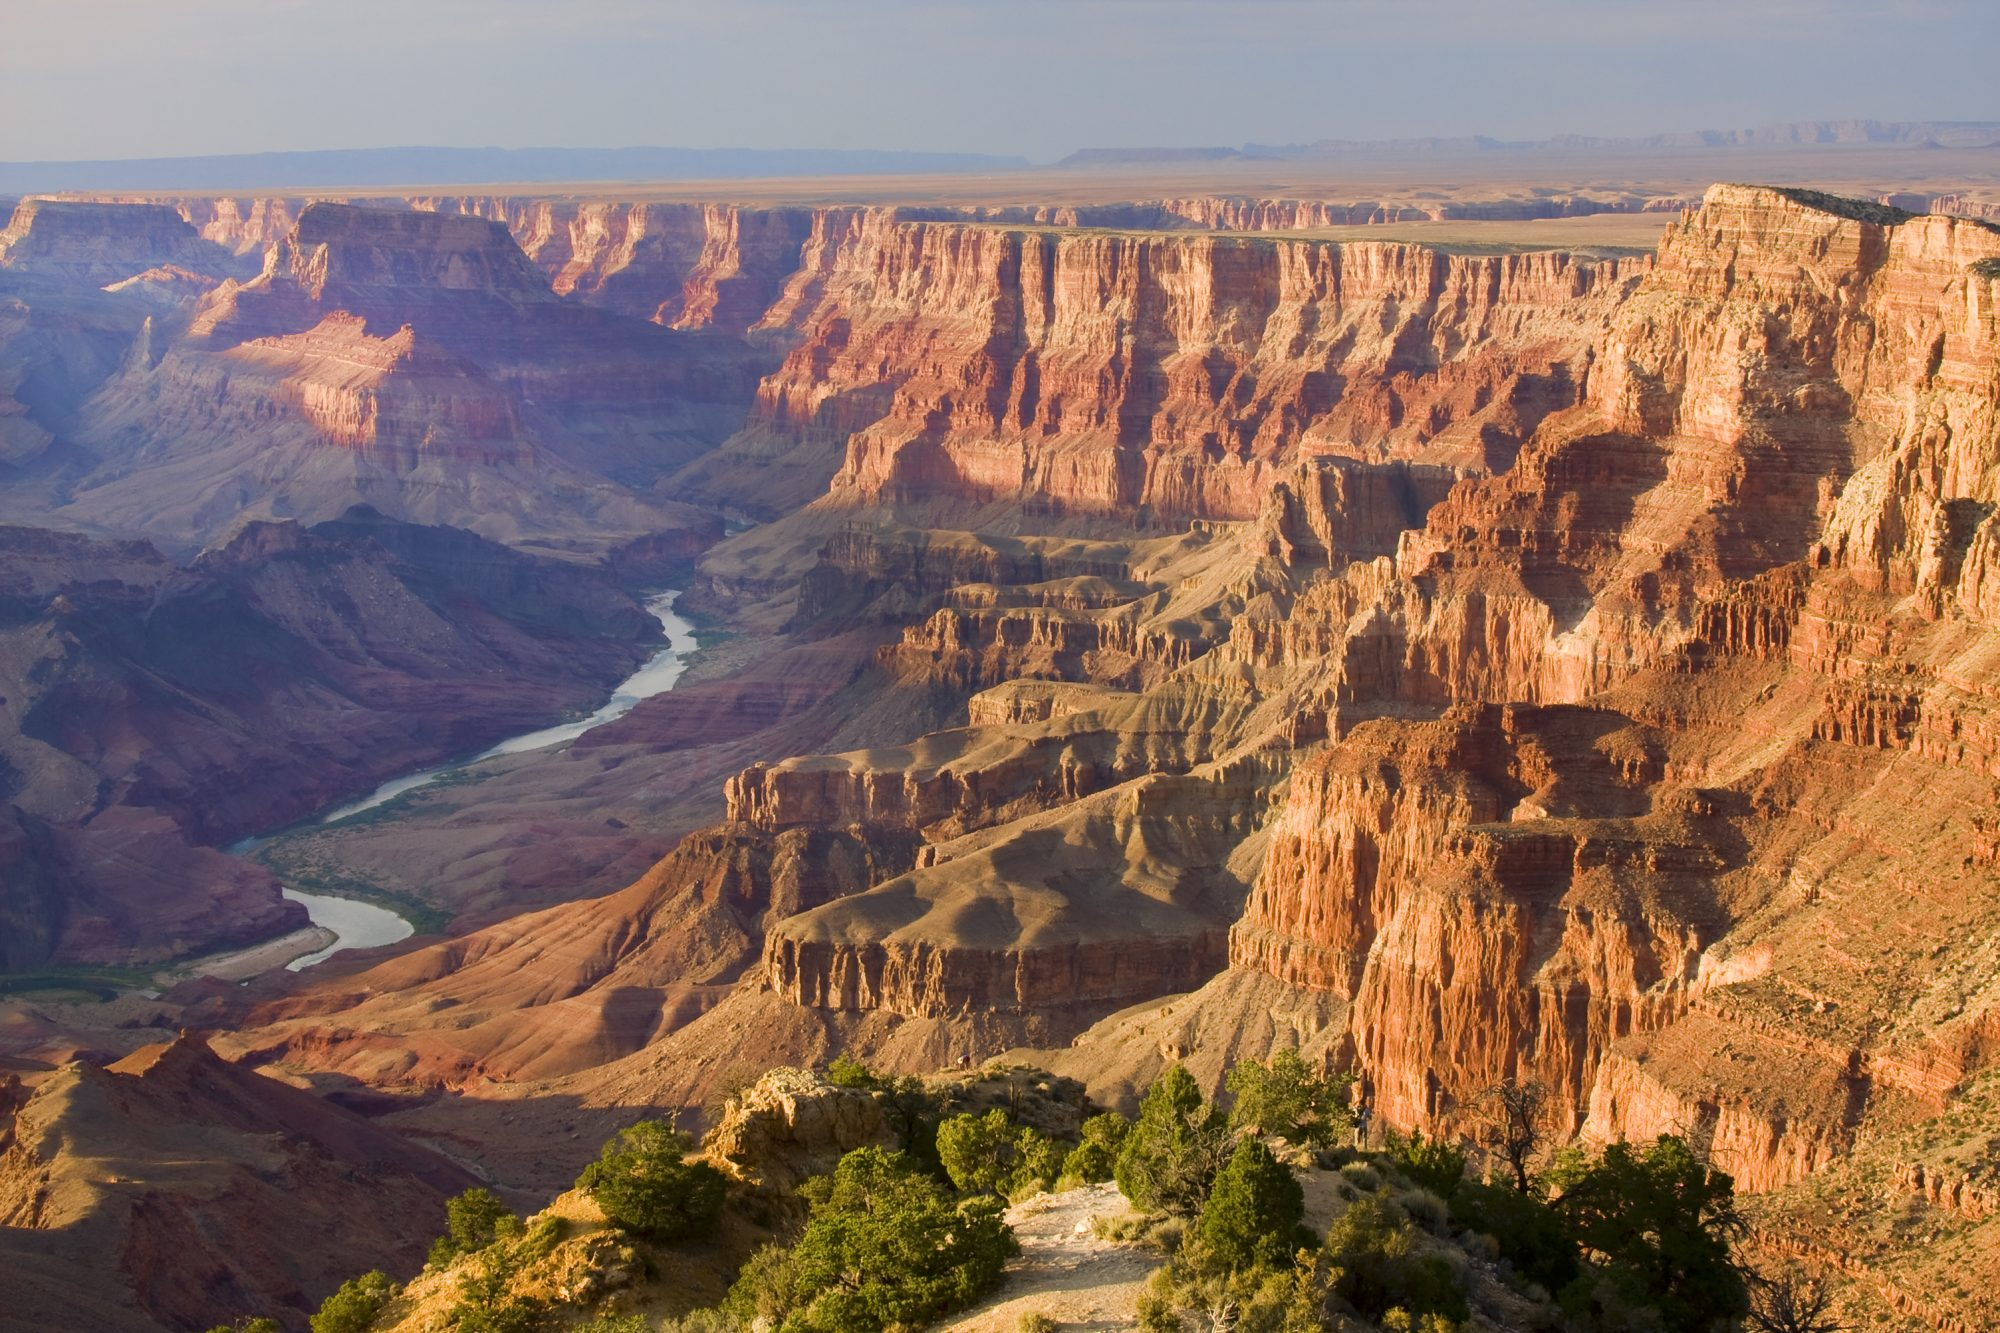 Hike the Grand Canyon From Your Couch With This Immersive Virtual Tour